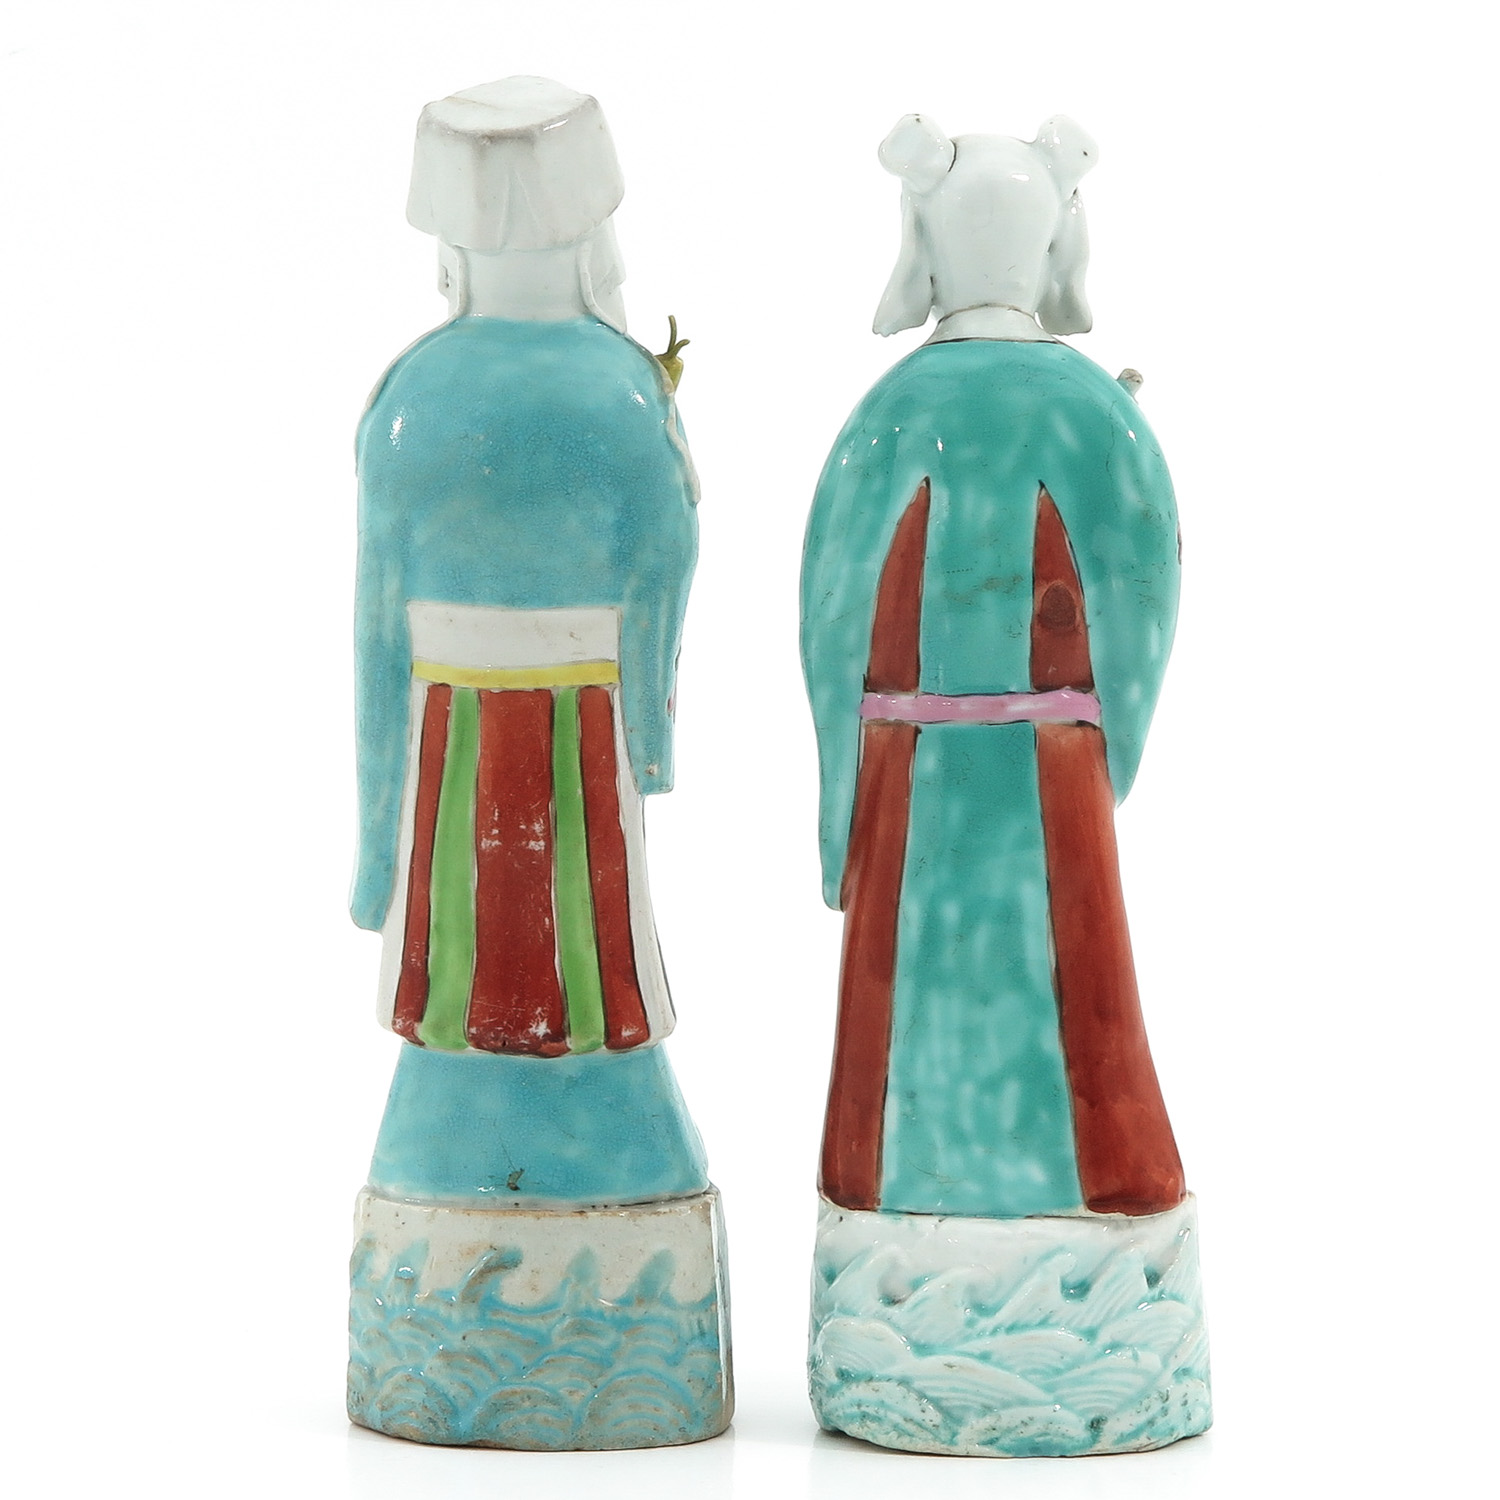 A Pair of Famille Rose Figures - Image 3 of 10